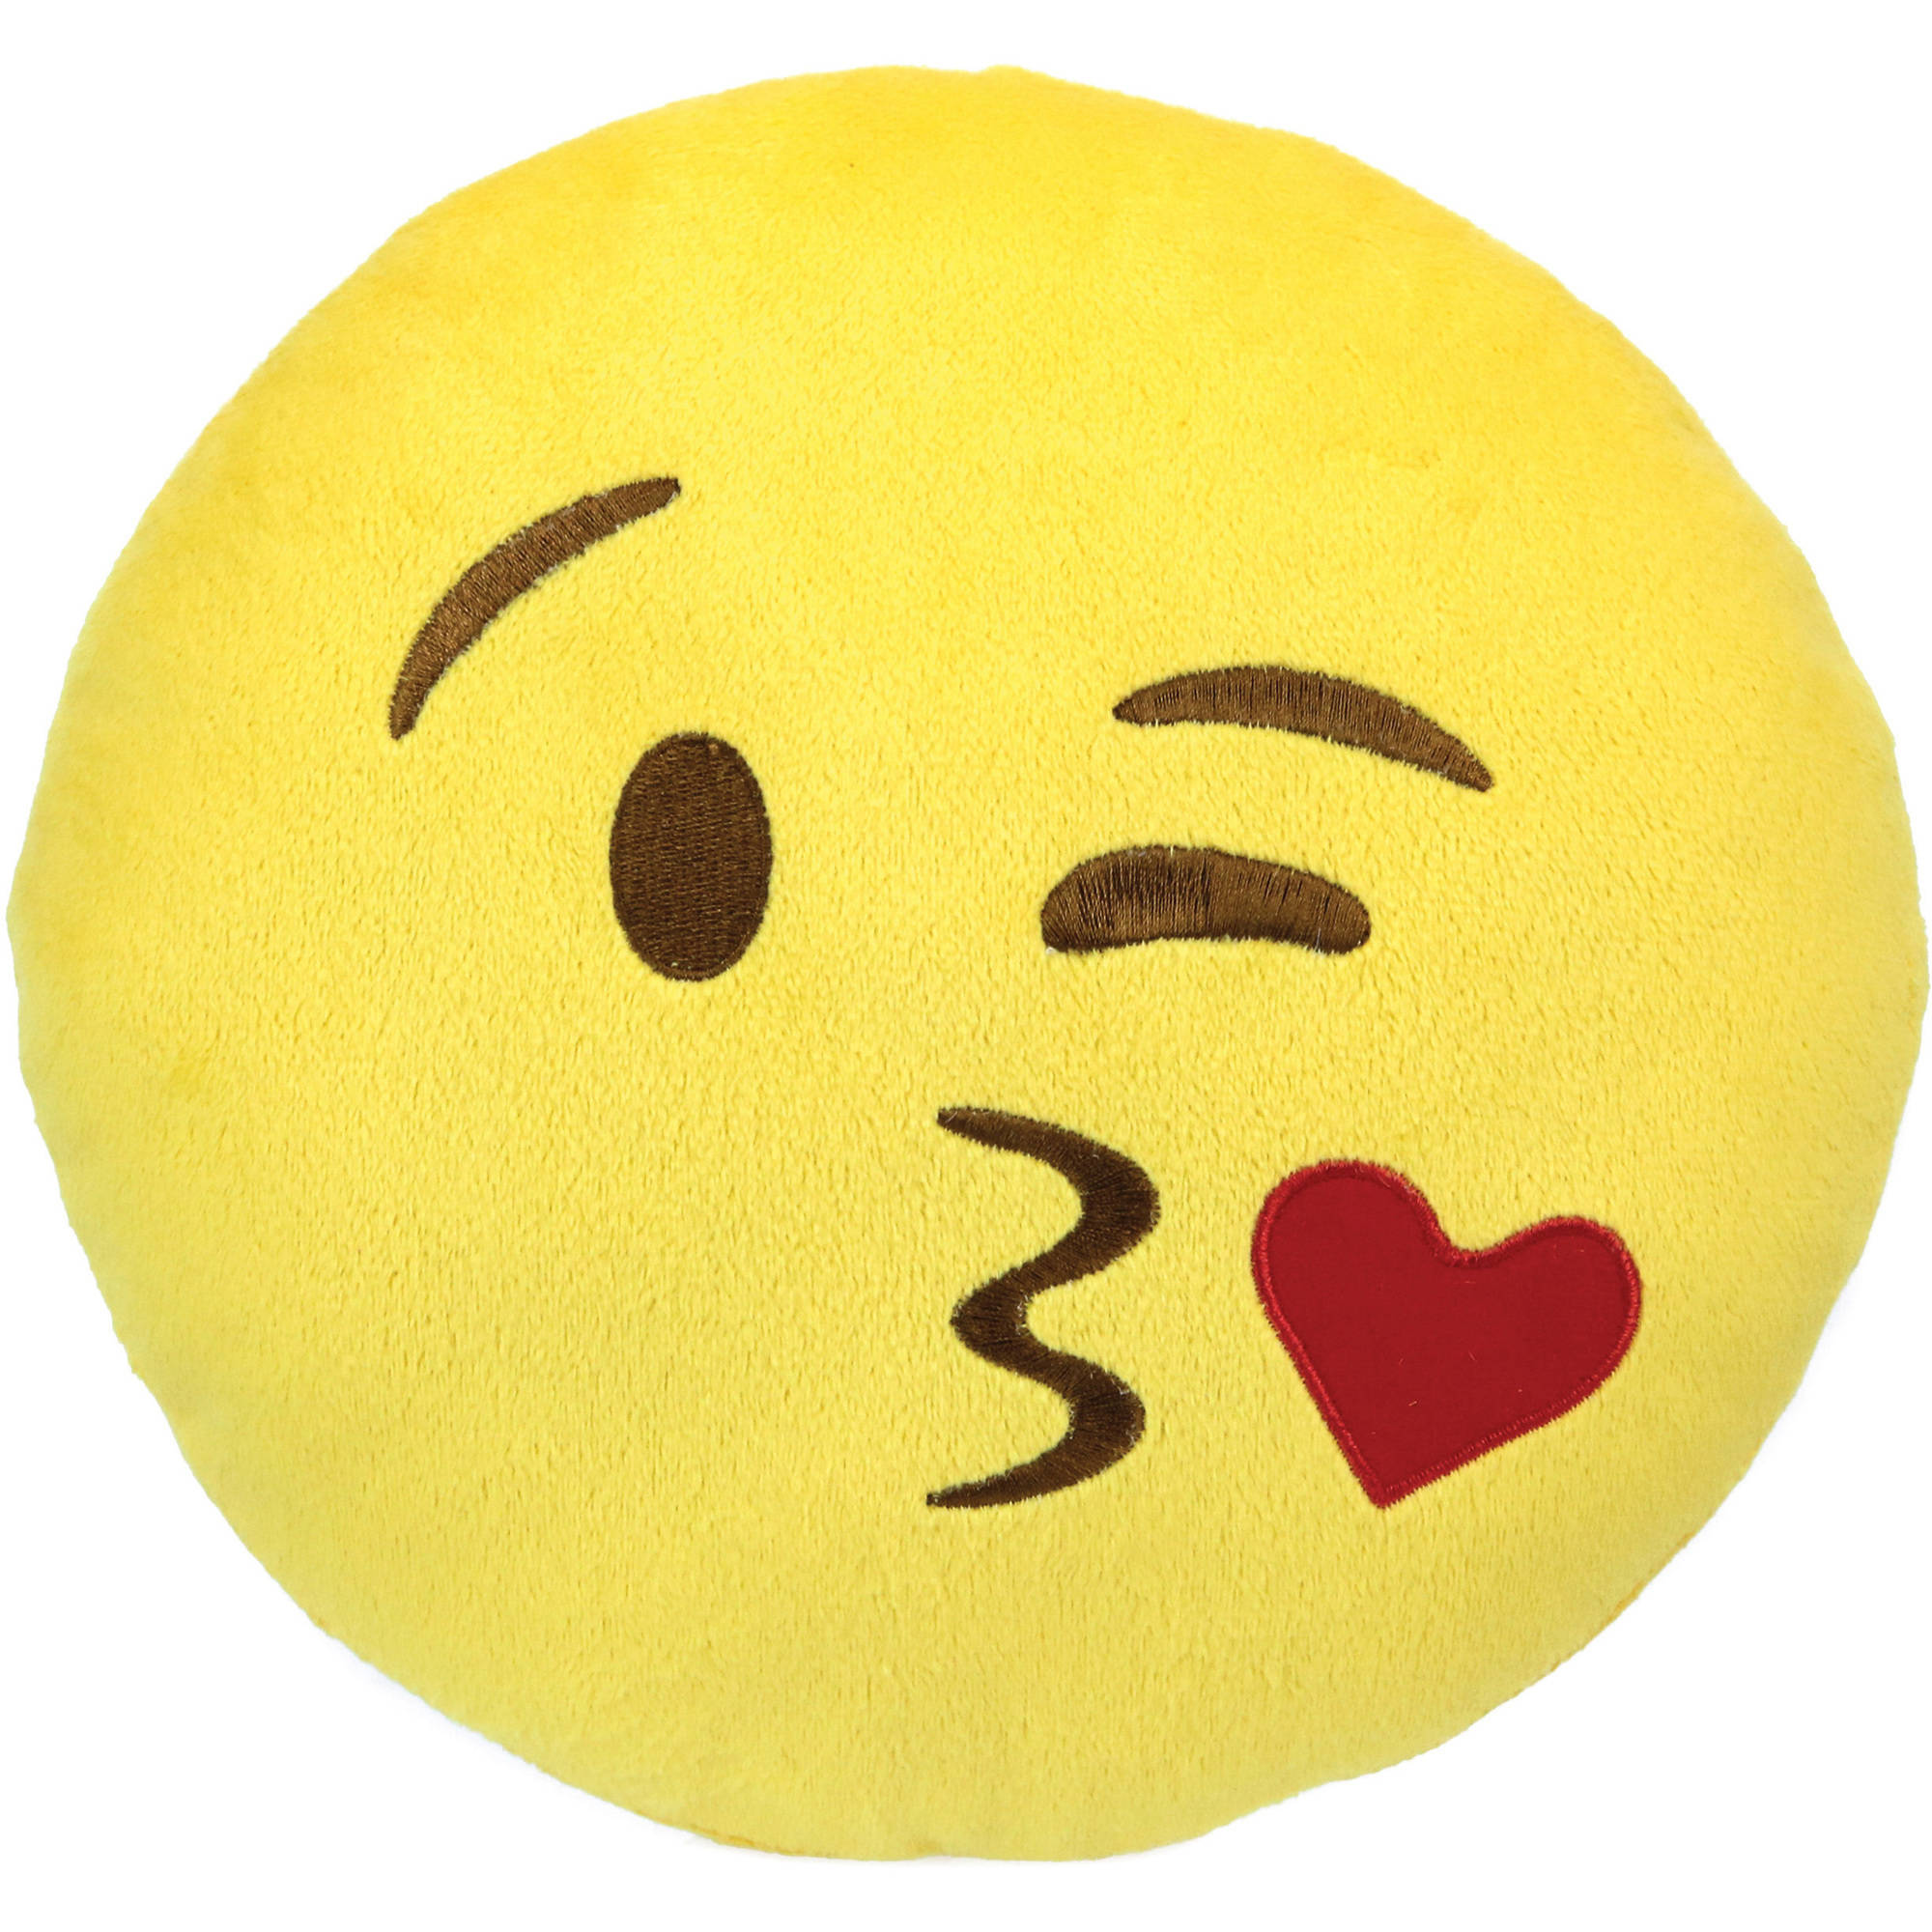 Emoji Small Pillow, Face Throwing a Kiss